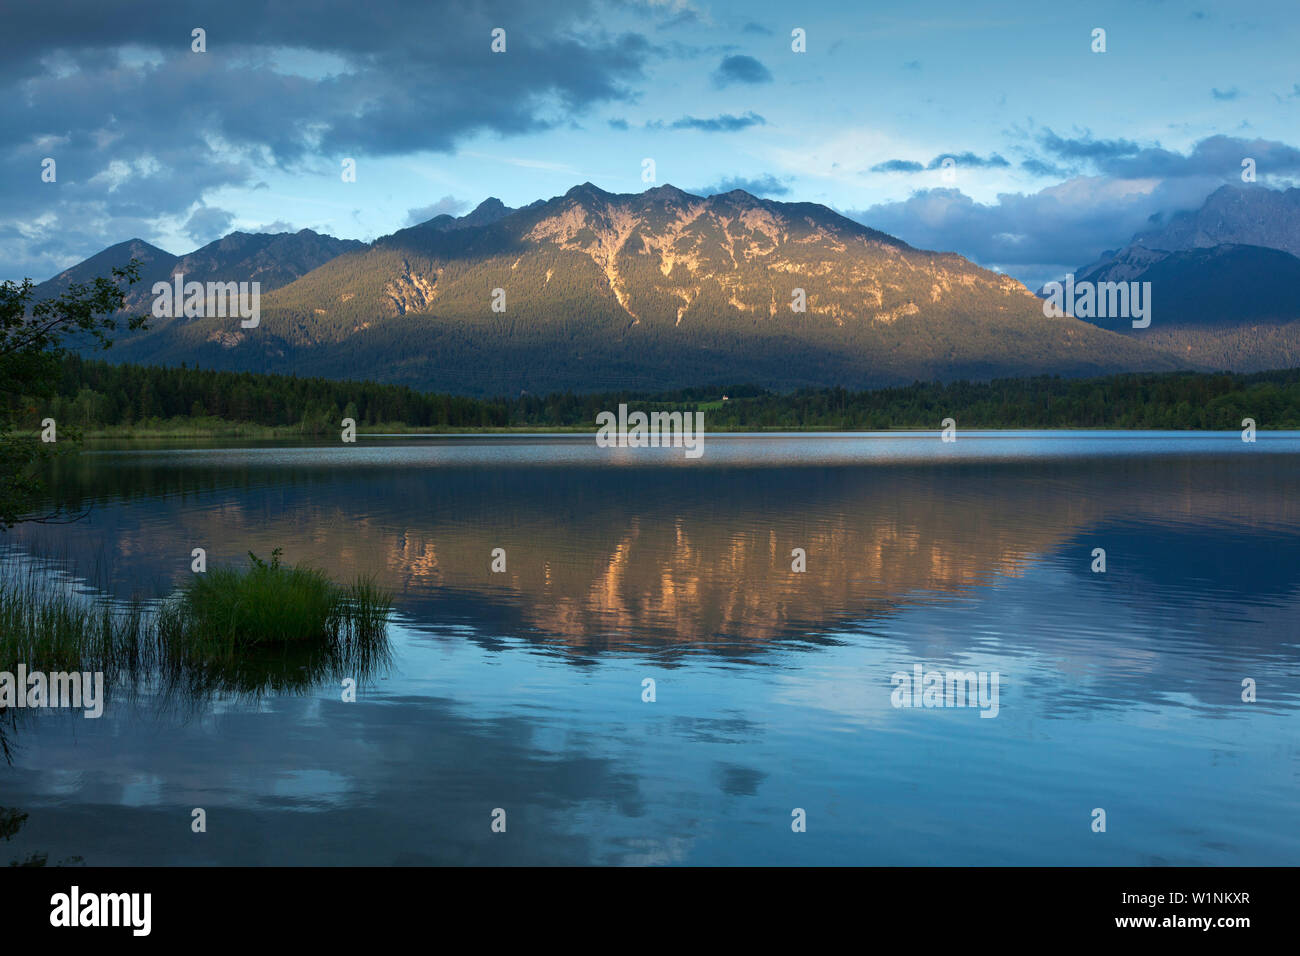 Barmsee, view to Soierngruppe, Werdenfels region, Bavaria, Germany - Stock Image